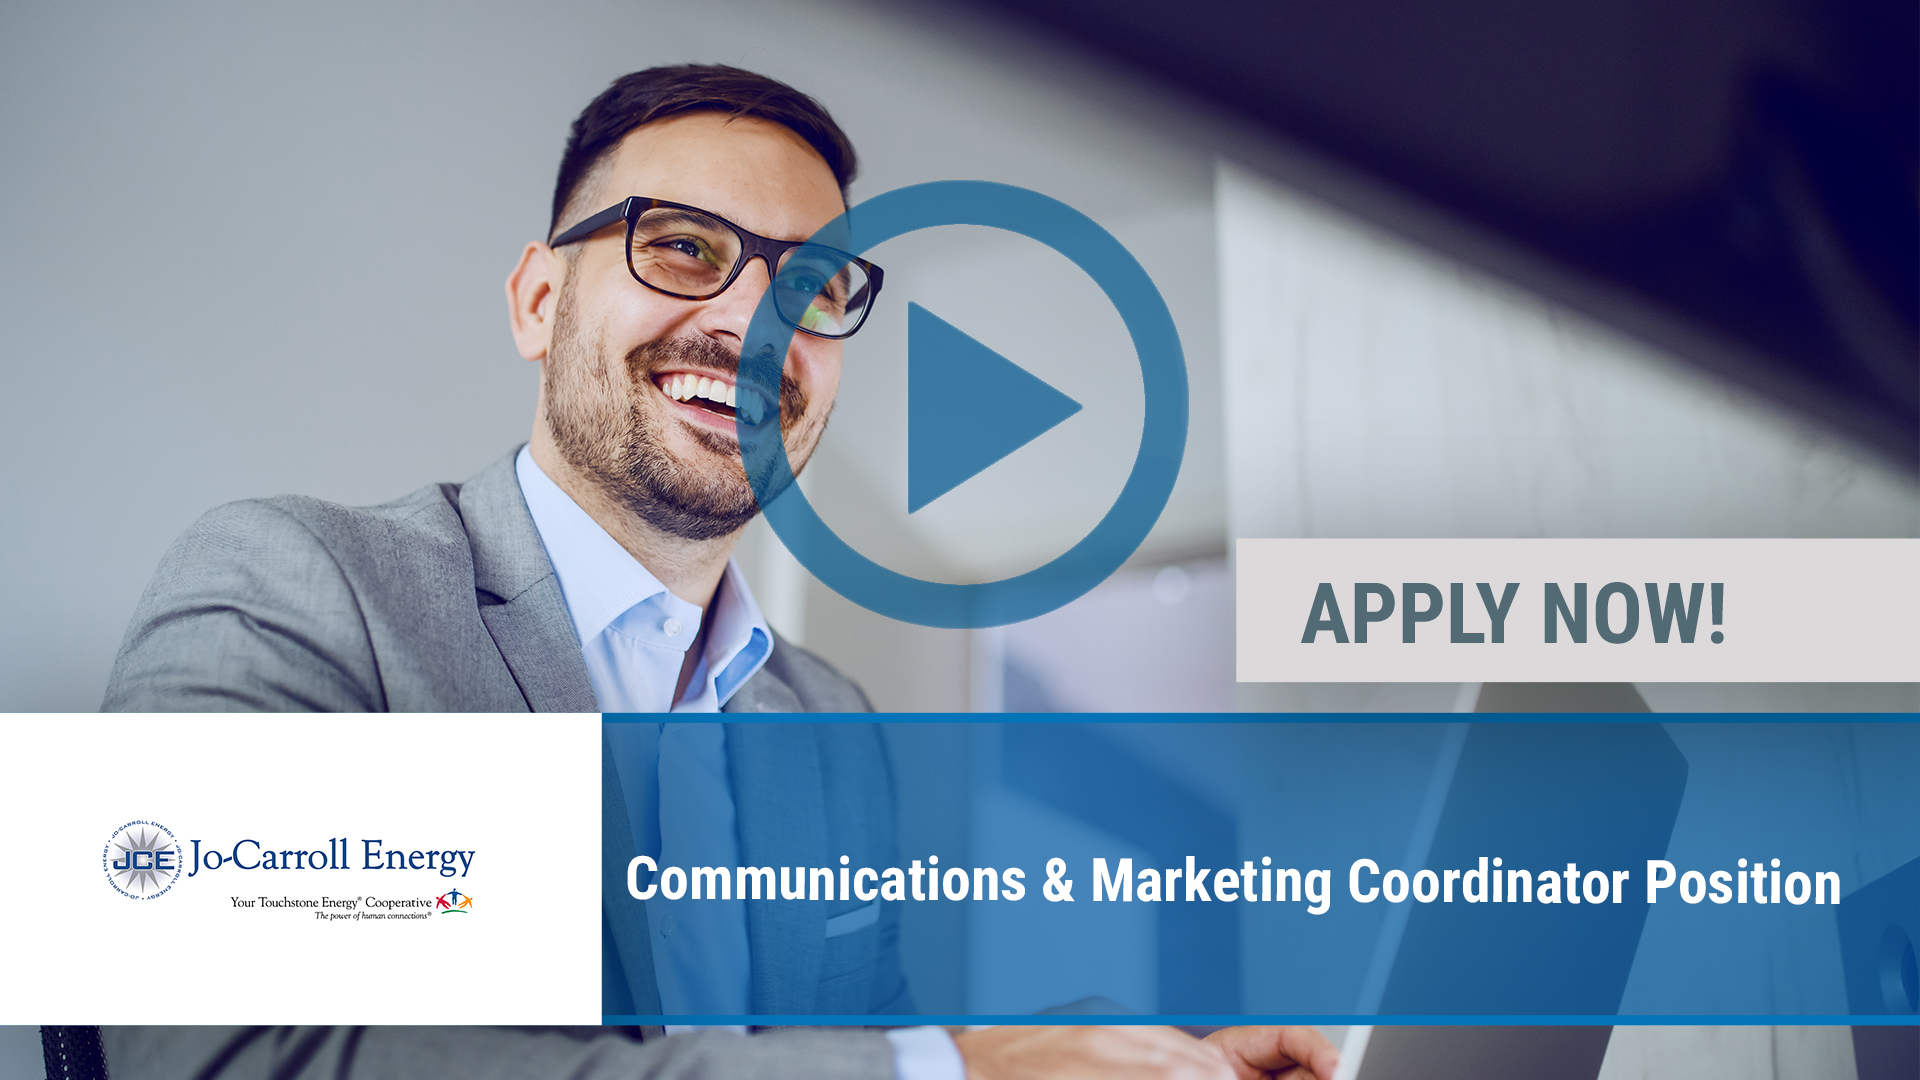 Watch our careers video for available job opening Communications & Marketing Coordinator Position in Elizabeth, IL